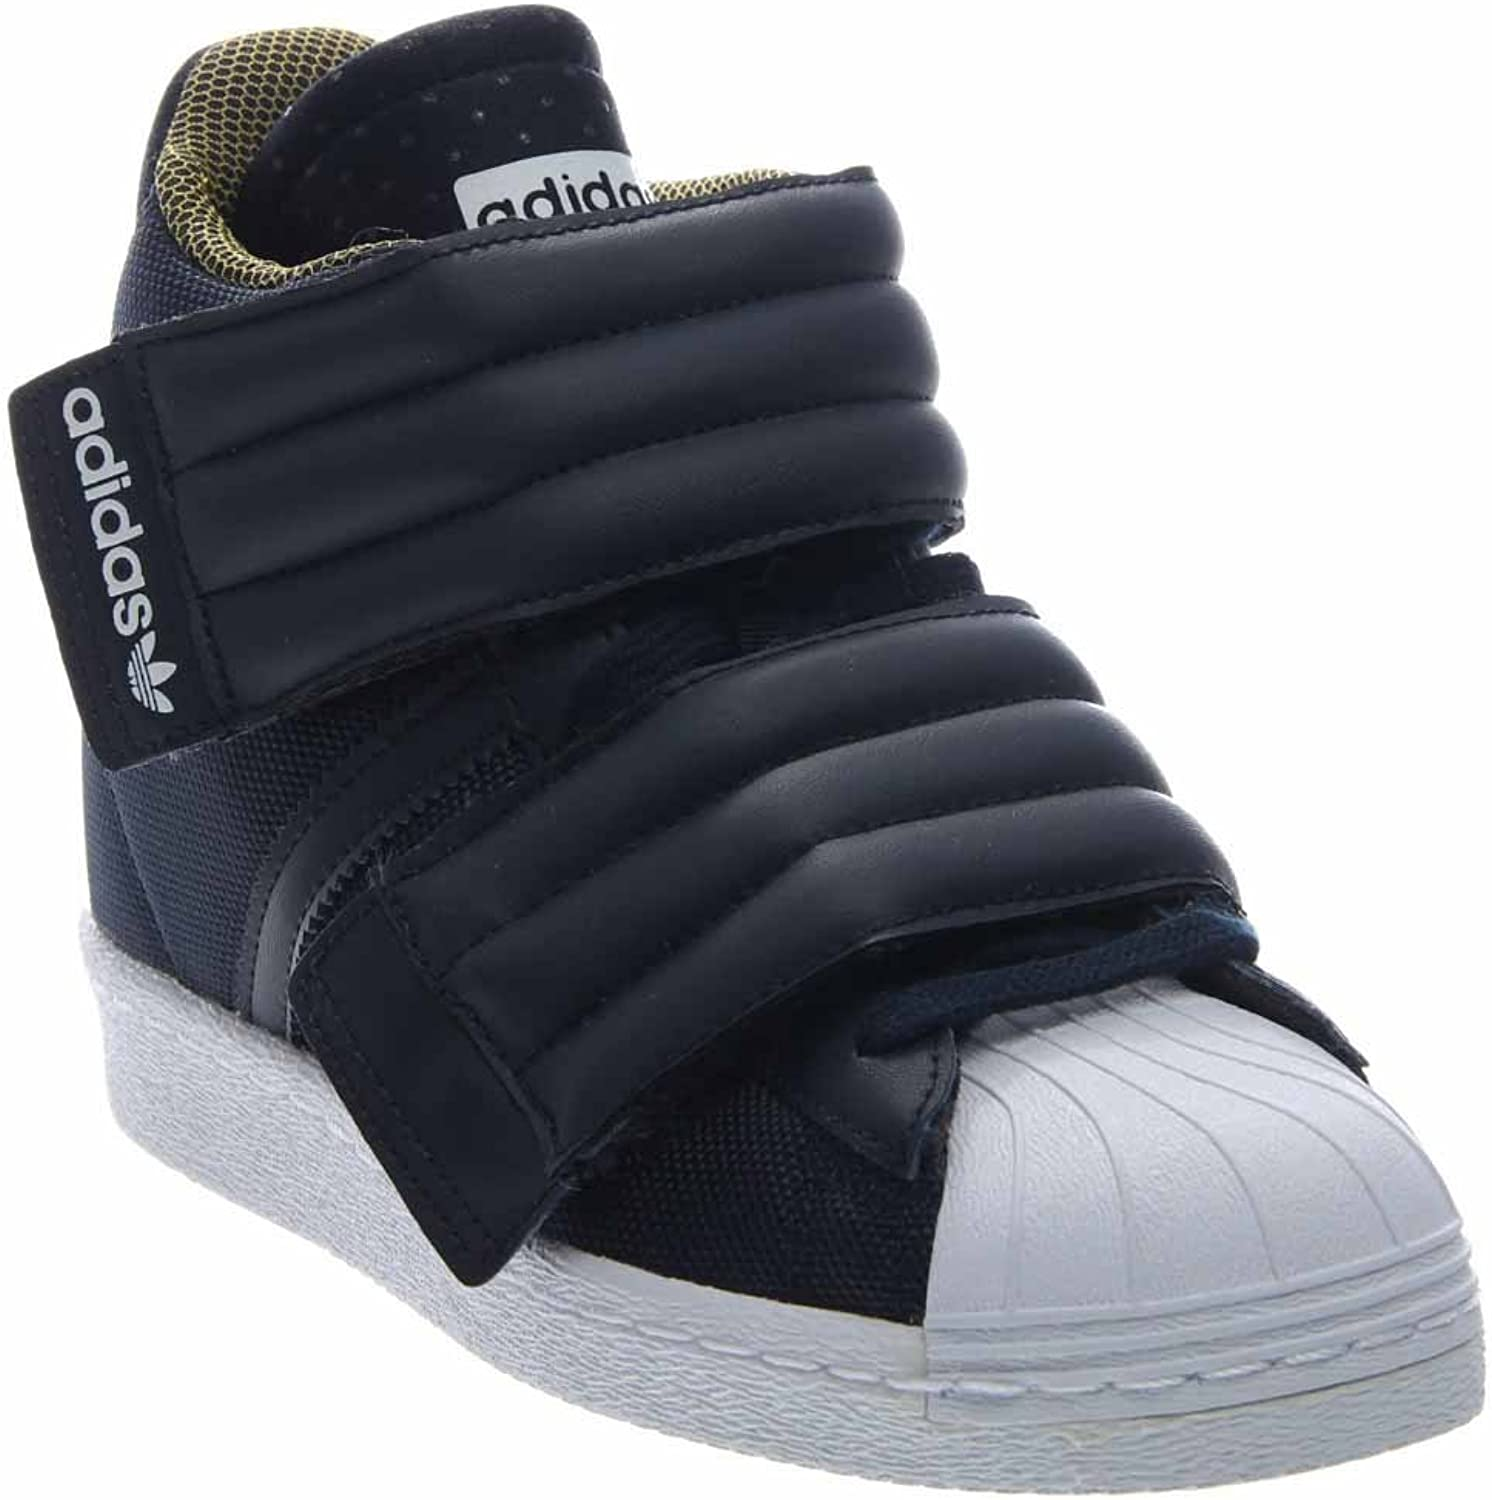 Adidas Superstar UP 2STRAP W Sneakers